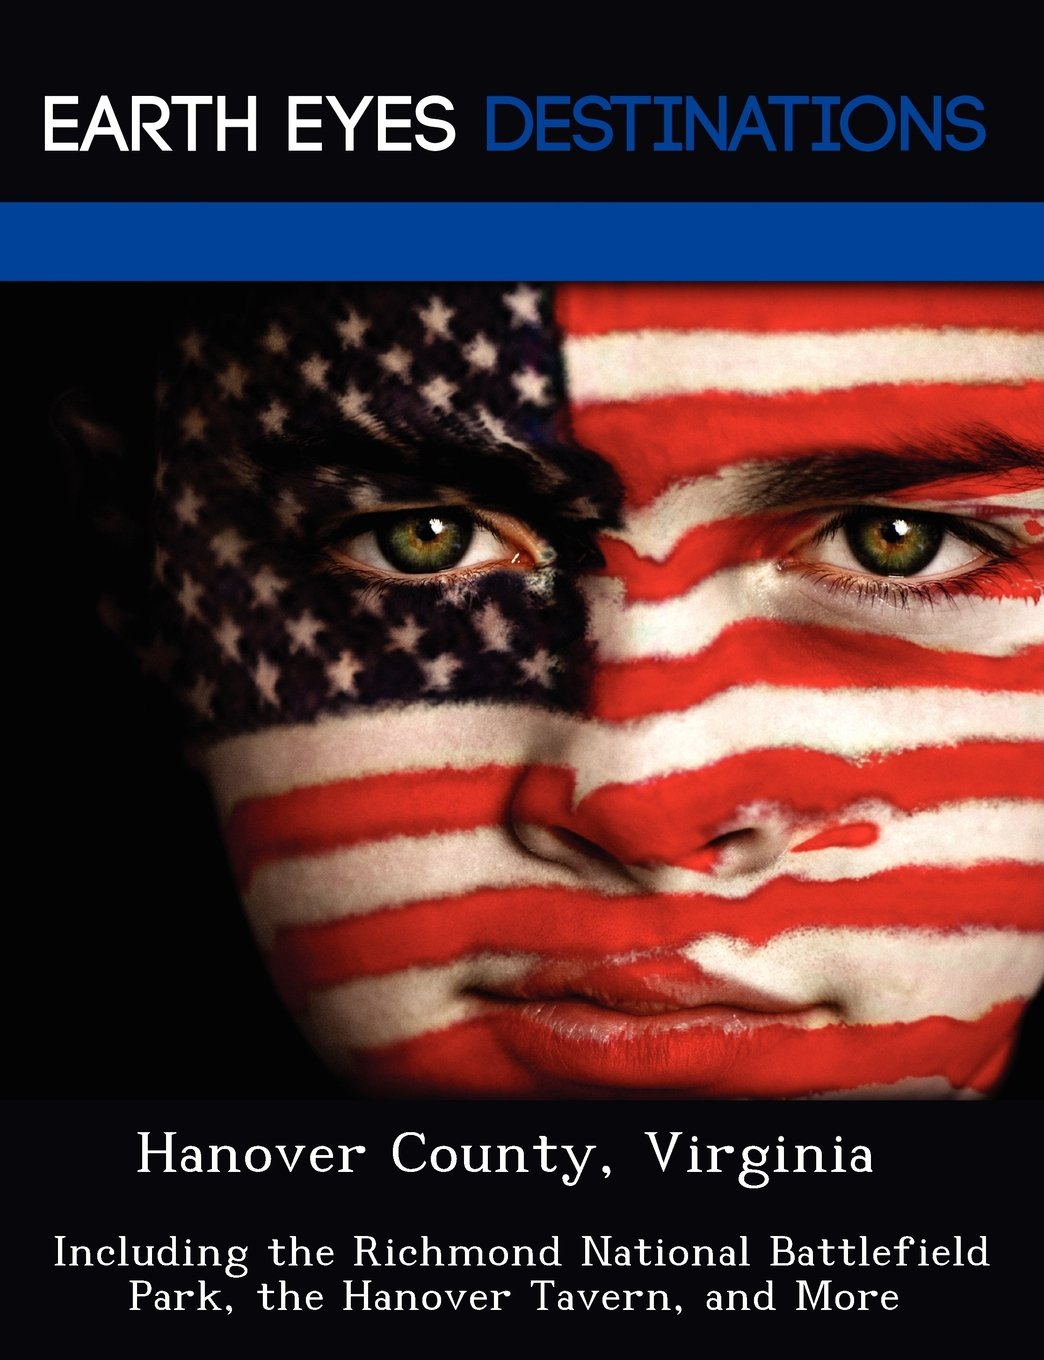 hanover-county-virginia-including-the-richmond-national-battlefield-park-the-hanover-tavern-and-more